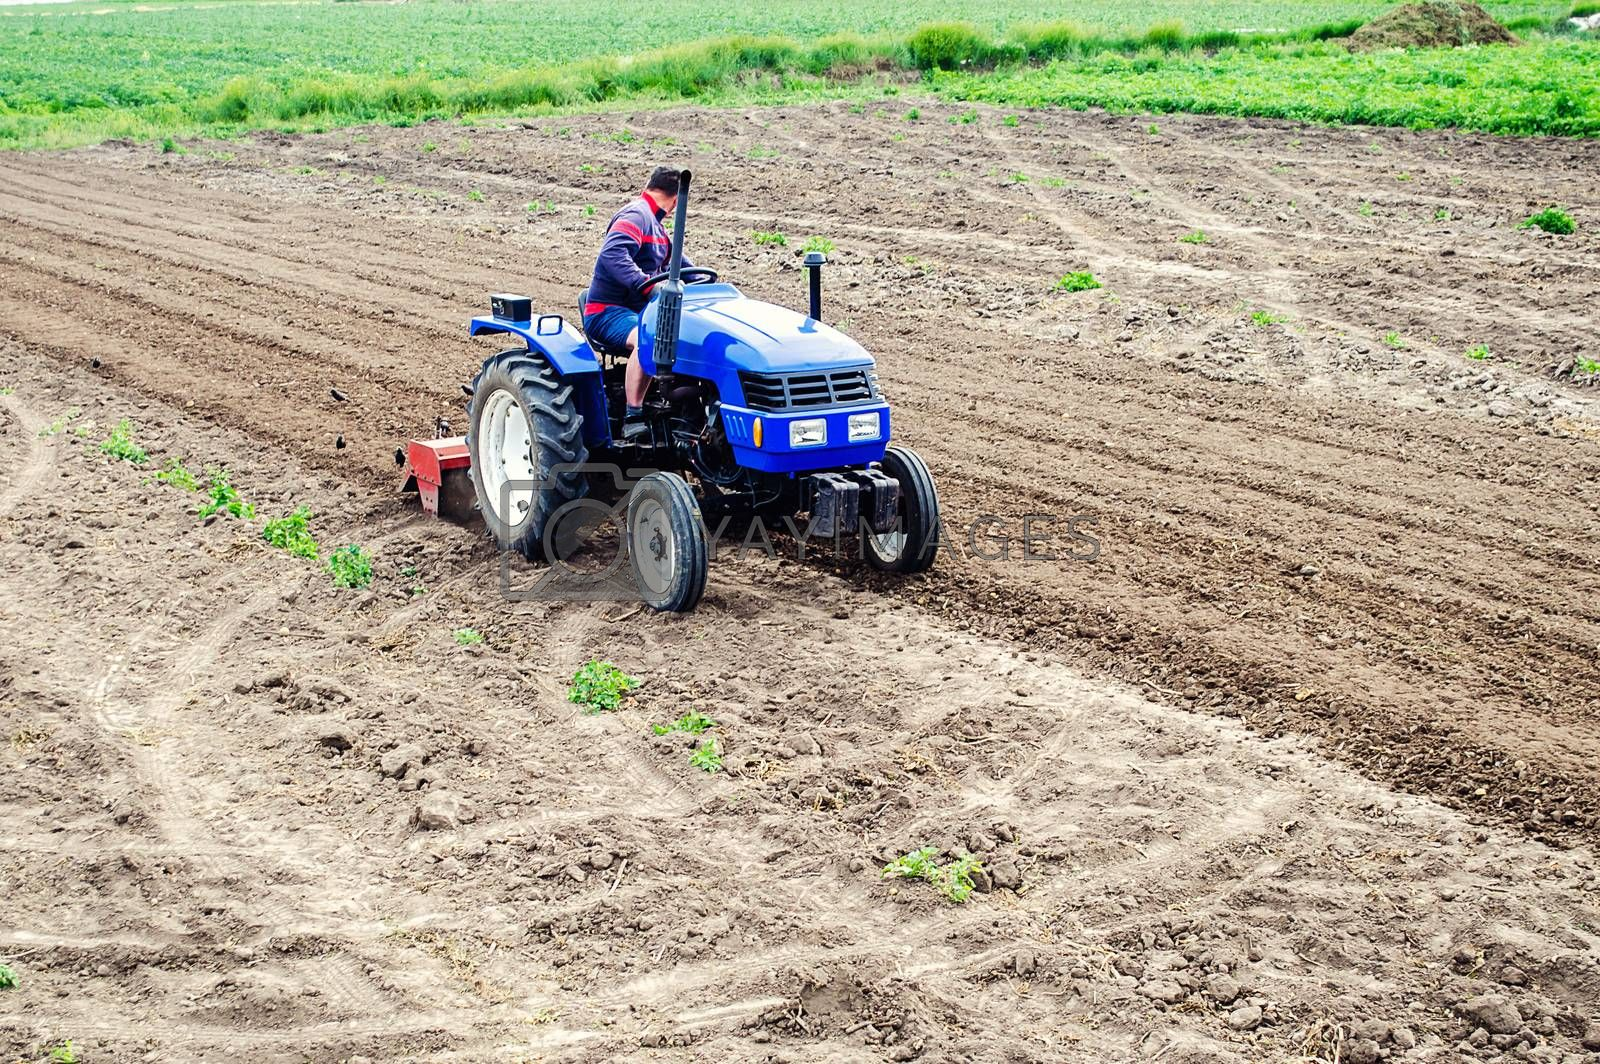 Farmer on a tractor loosens soil with milling machine. First stage of preparing soil for planting. Loosening surface, land cultivation. Use agricultural machinery. Farming, agriculture. Plowing field.